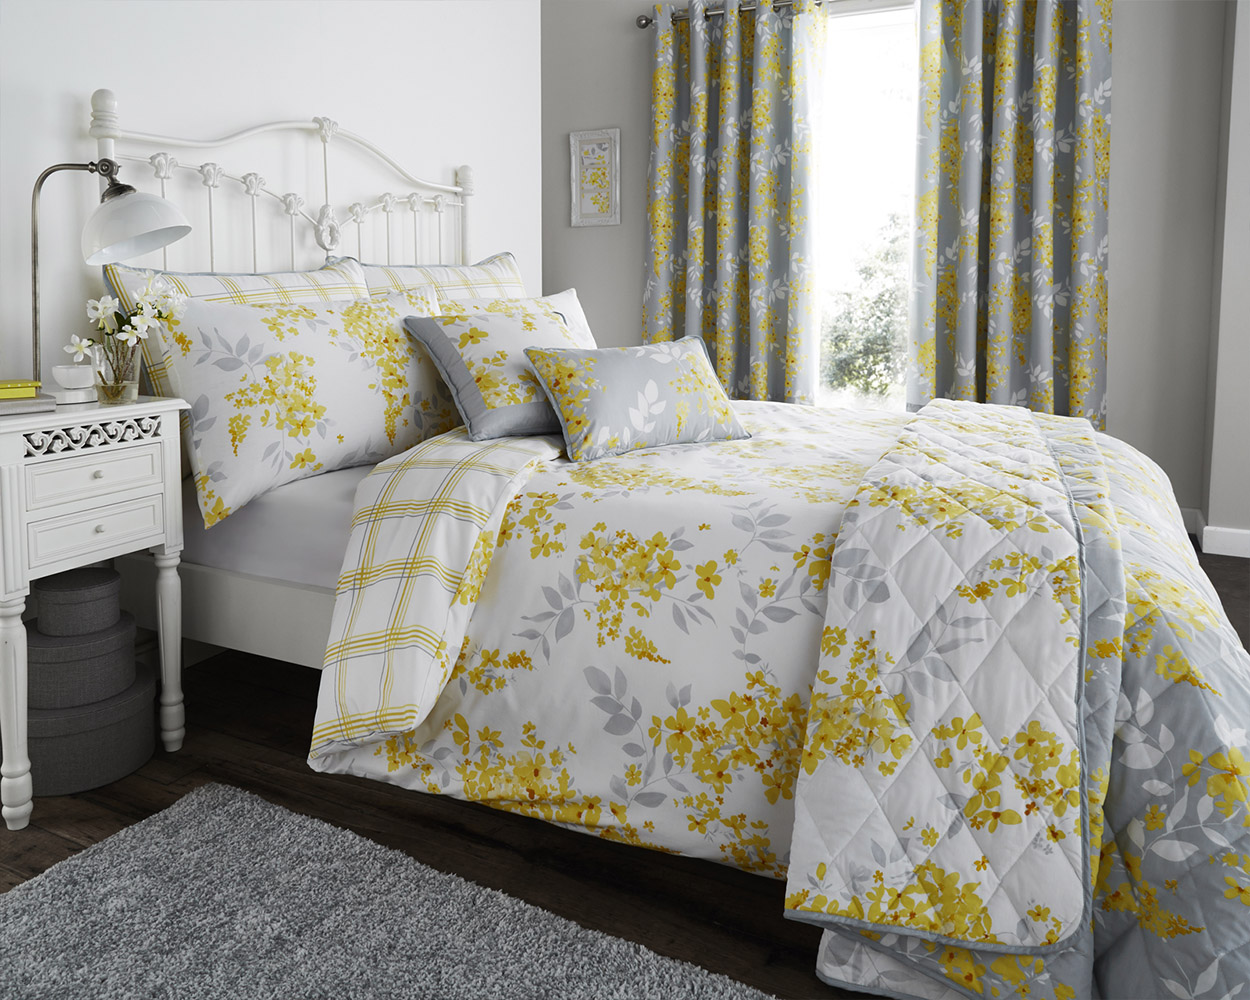 Cotton Rich Sophia Collection Design Duvet Set and Bedding Range in Lemon Yellow